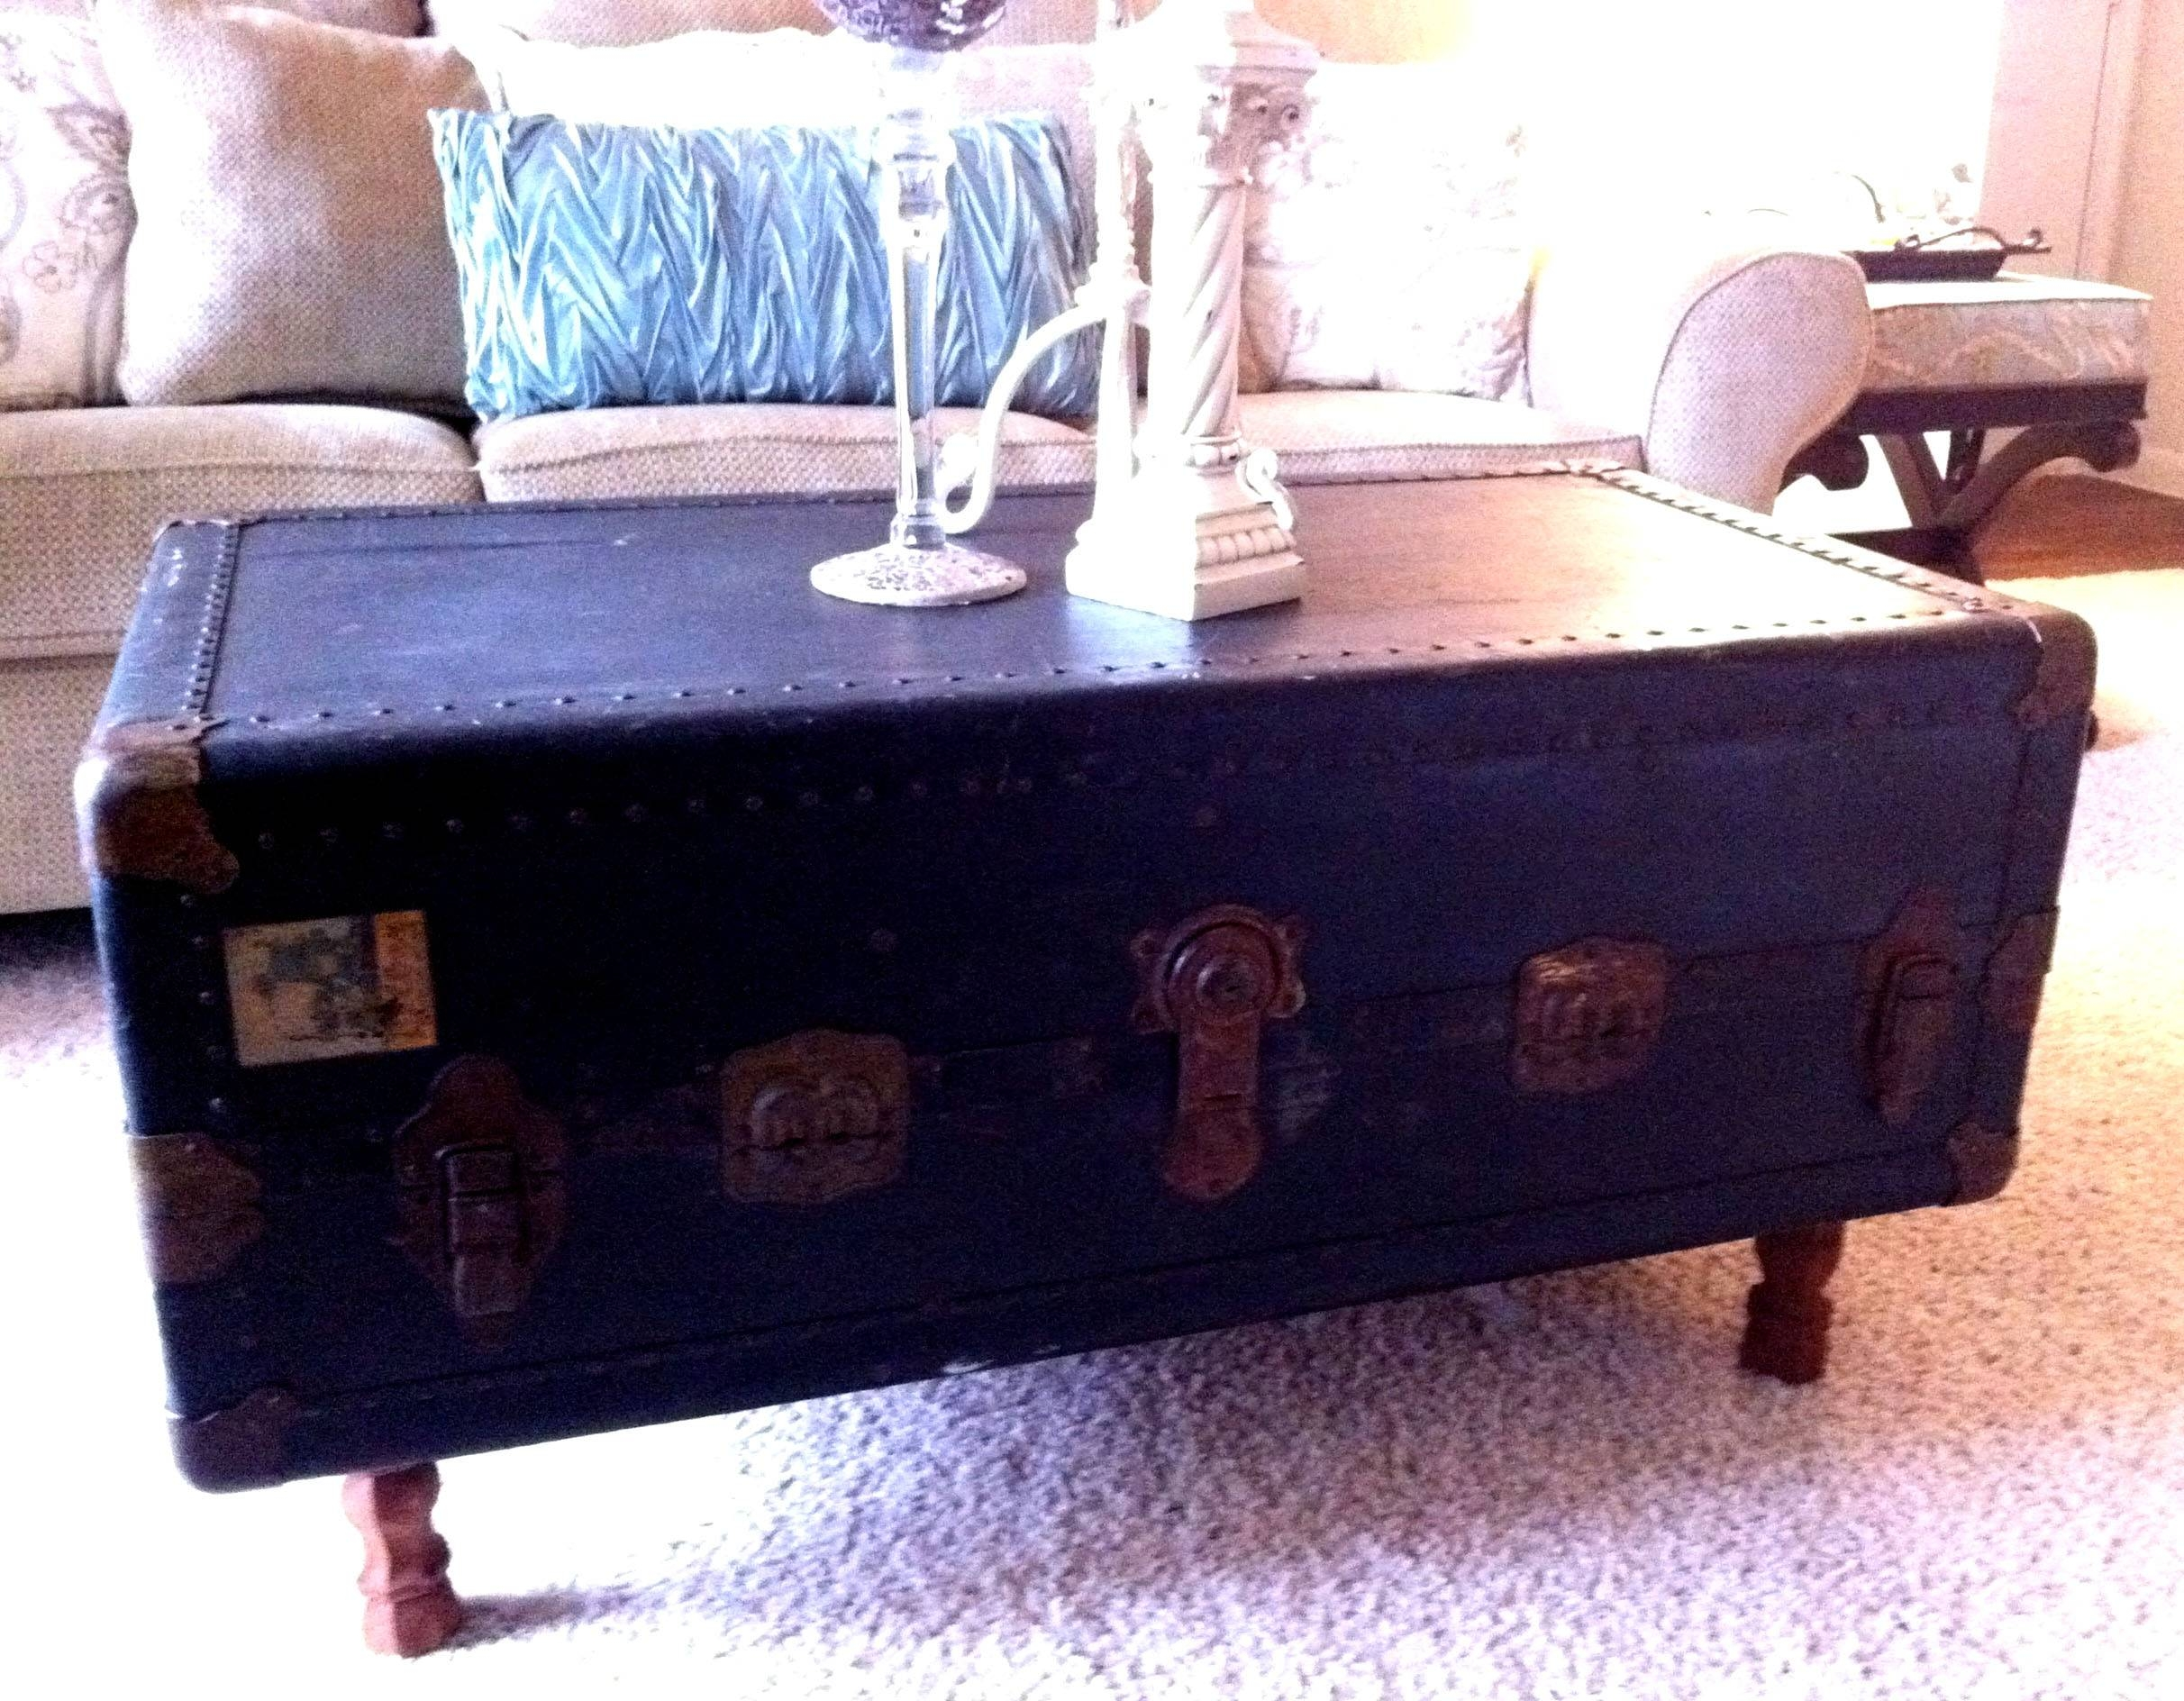 Steamer Trunk Coffee Table: Repurposing Old Stuff | Motifbrophy with regard to Old Trunks As Coffee Tables (Image 25 of 30)